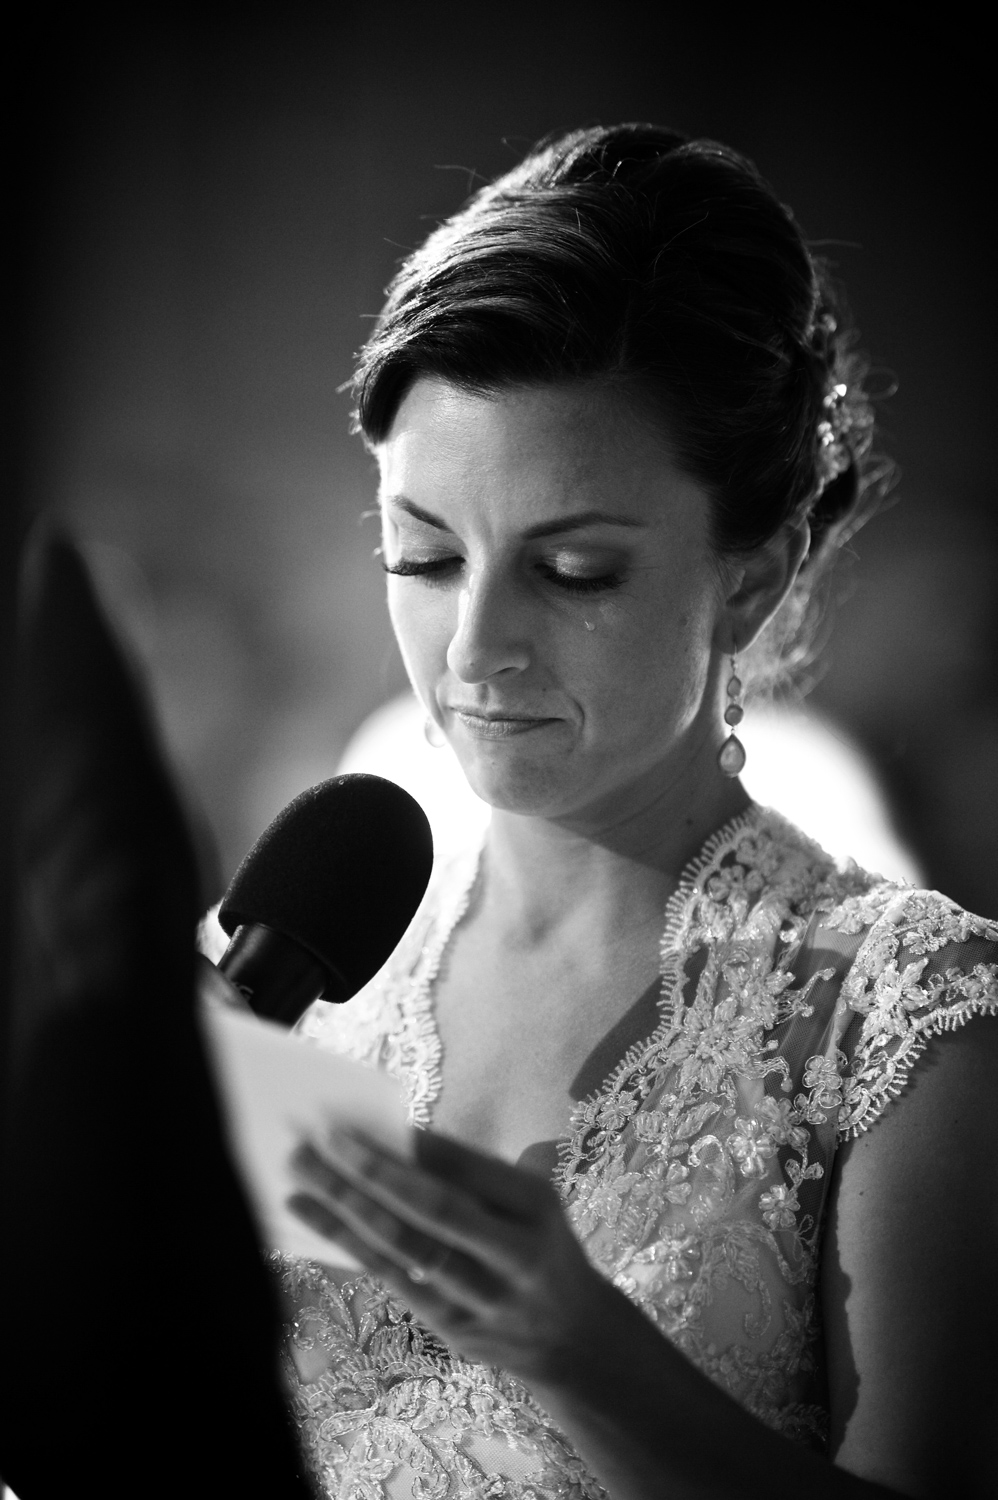 Bride cries during wedding ceremony at Morgan Manufacturing Chicago.